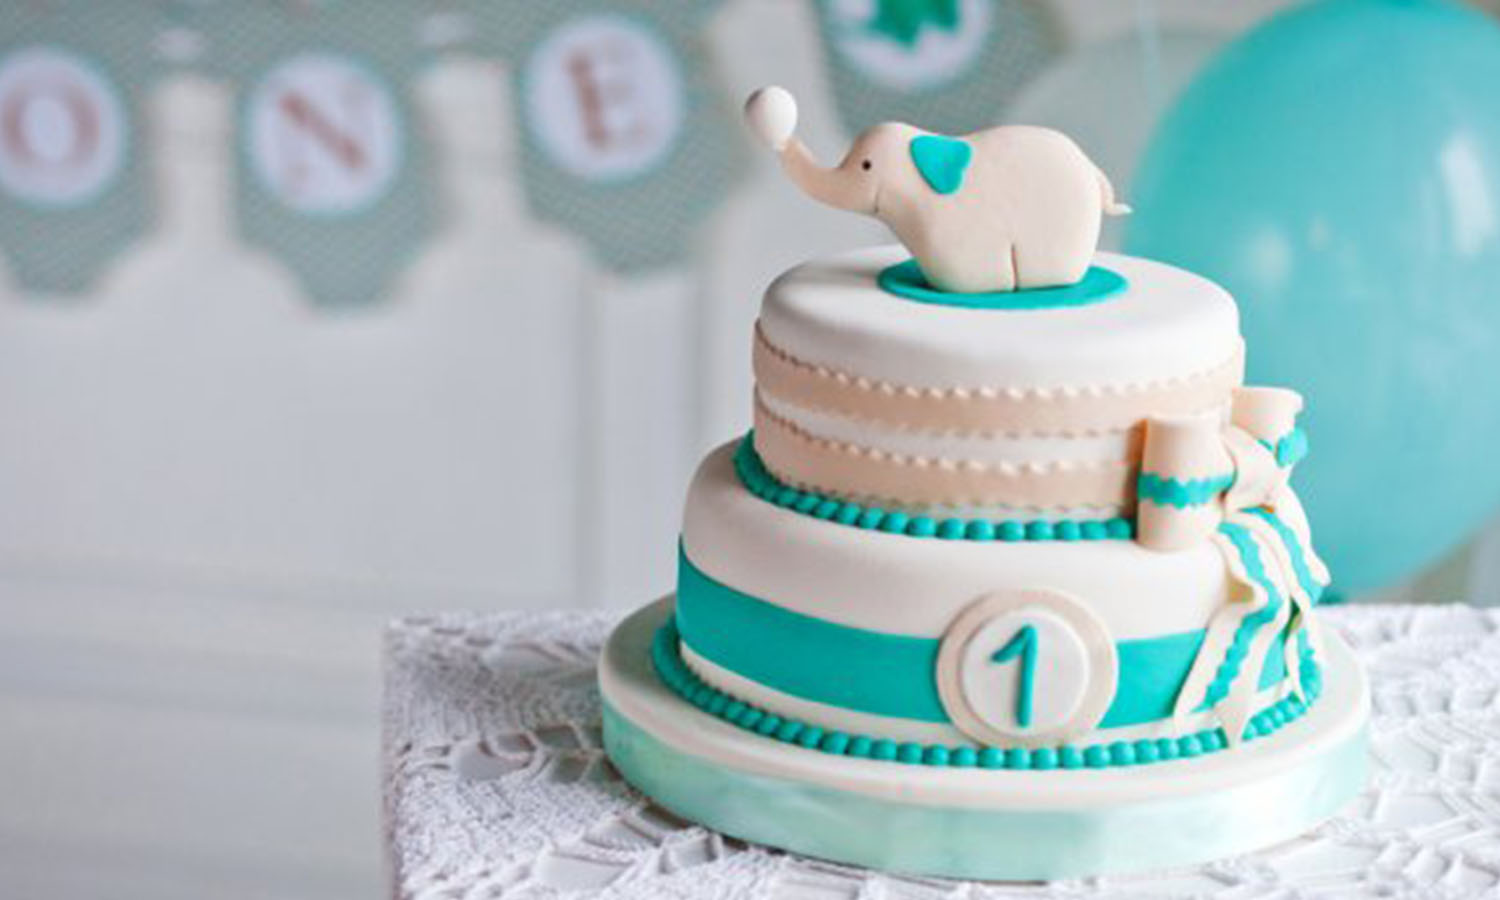 7 Creative Cake Ideas For Your Baby's First Birthday